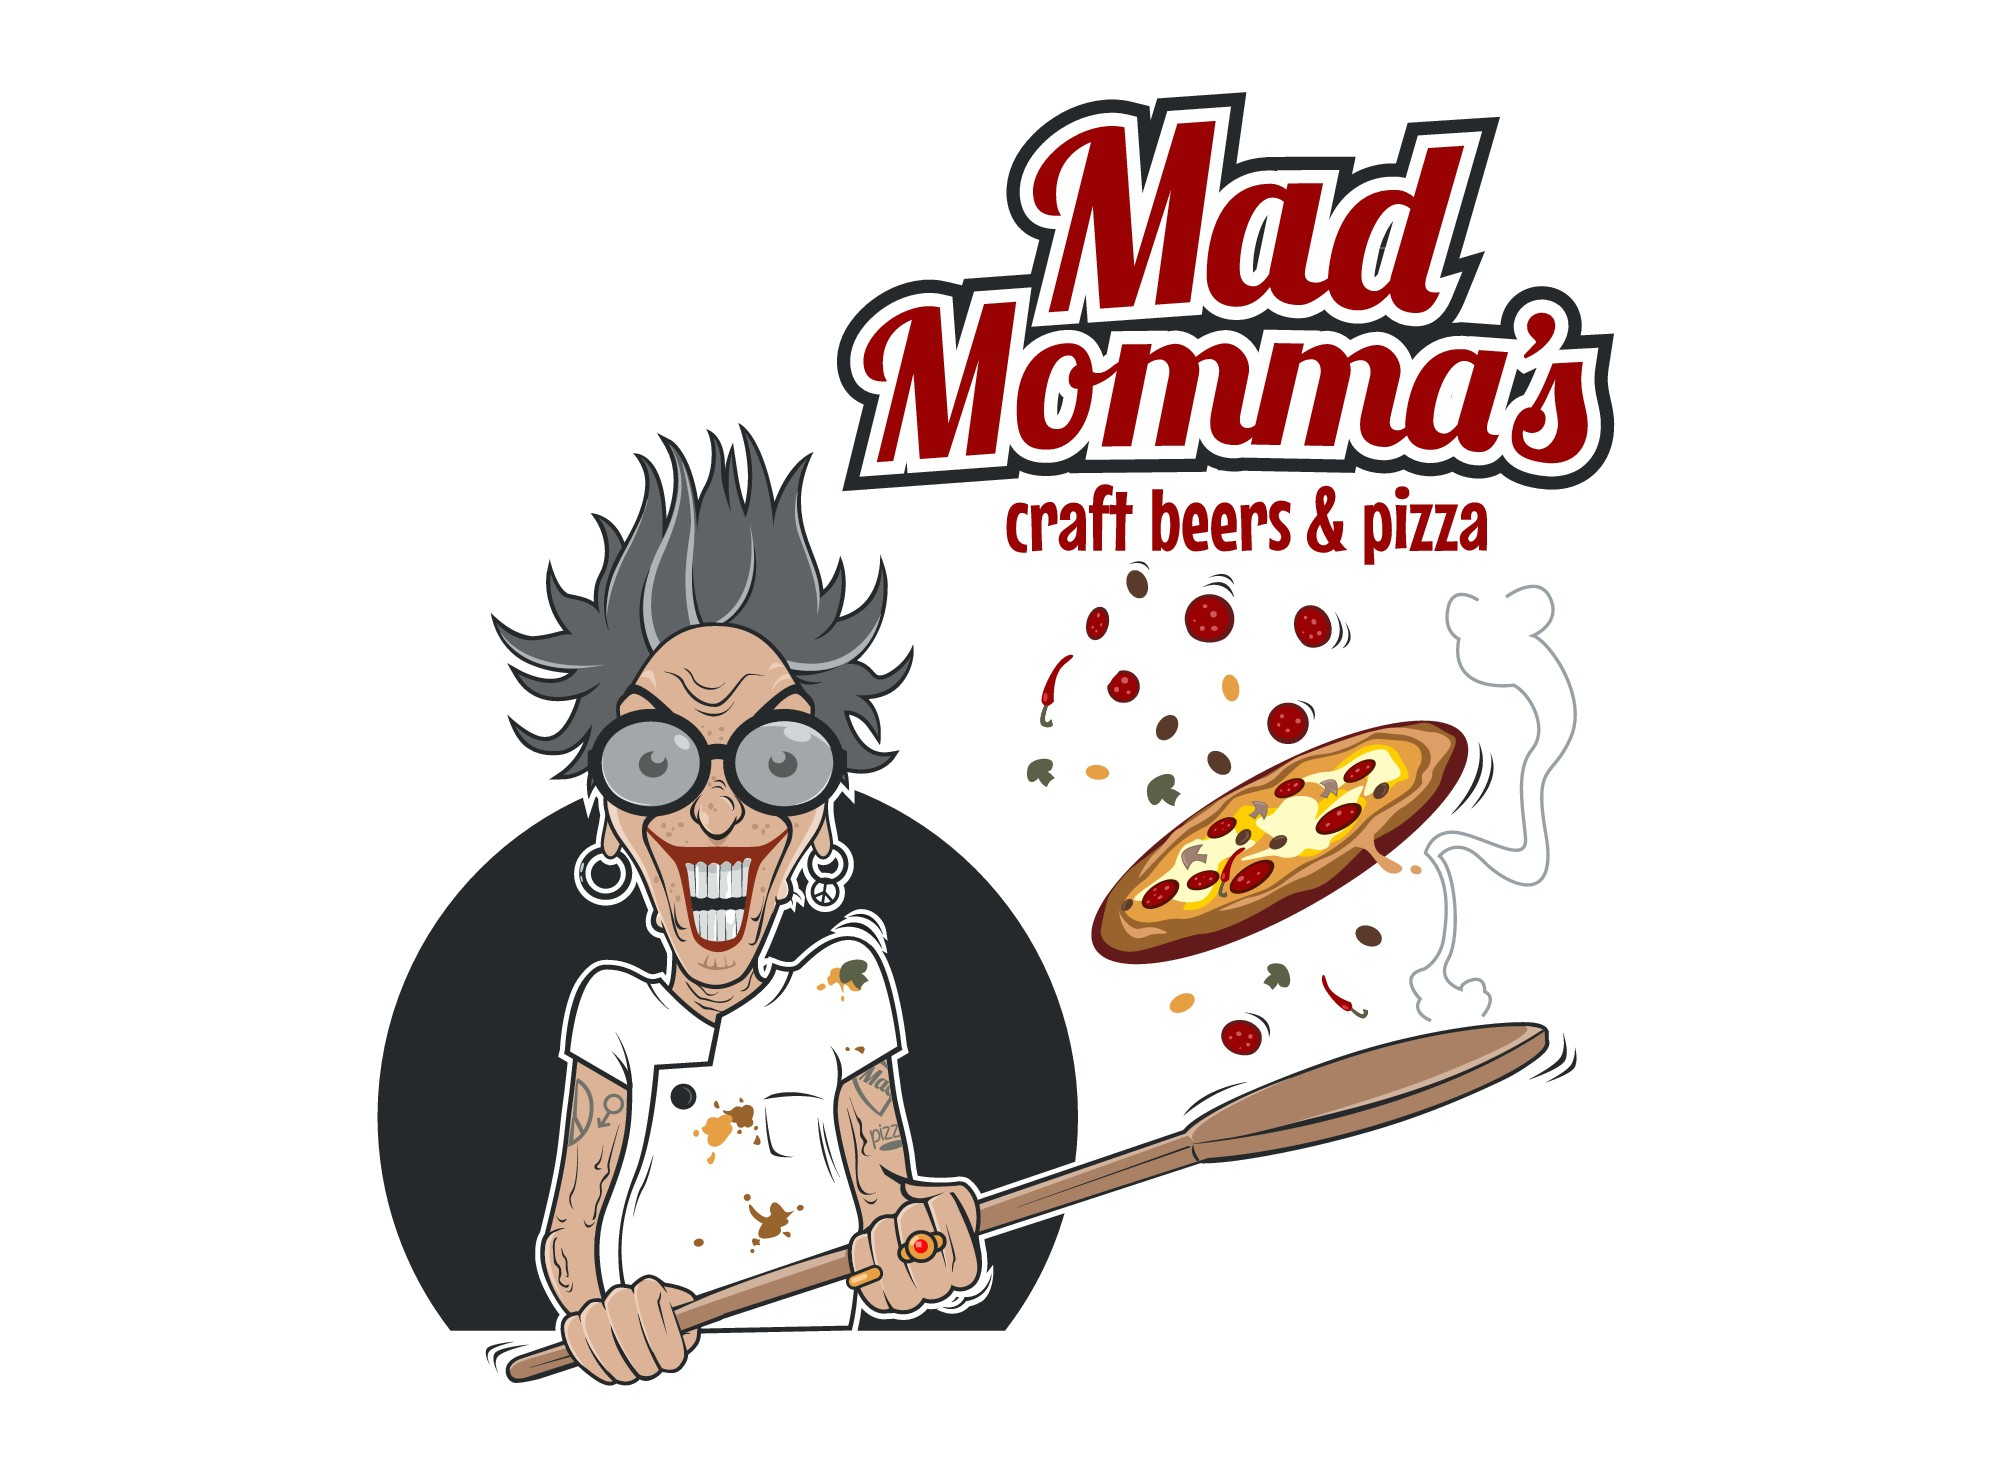 Looking for an illustrated logo design of a character named Mad Momma